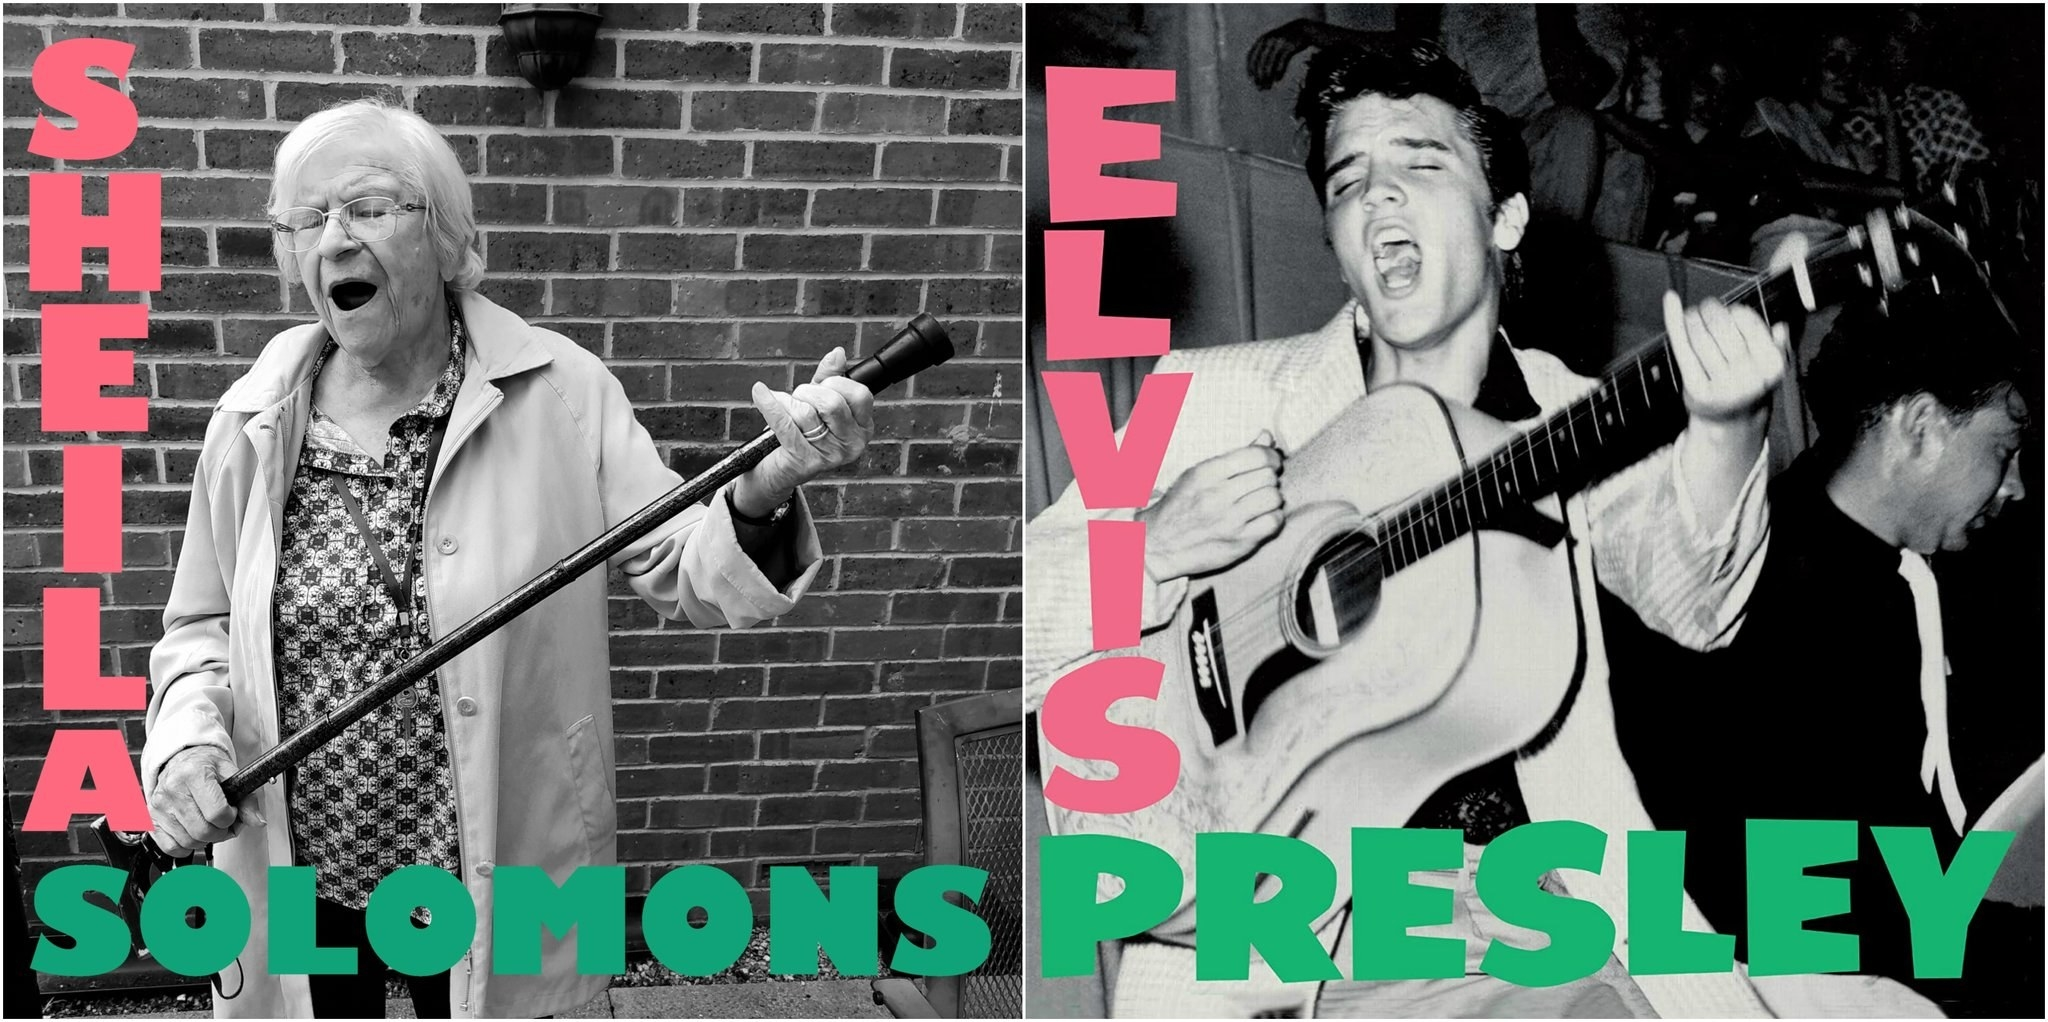 An elderly woman recreating Elvis' self titled album cover